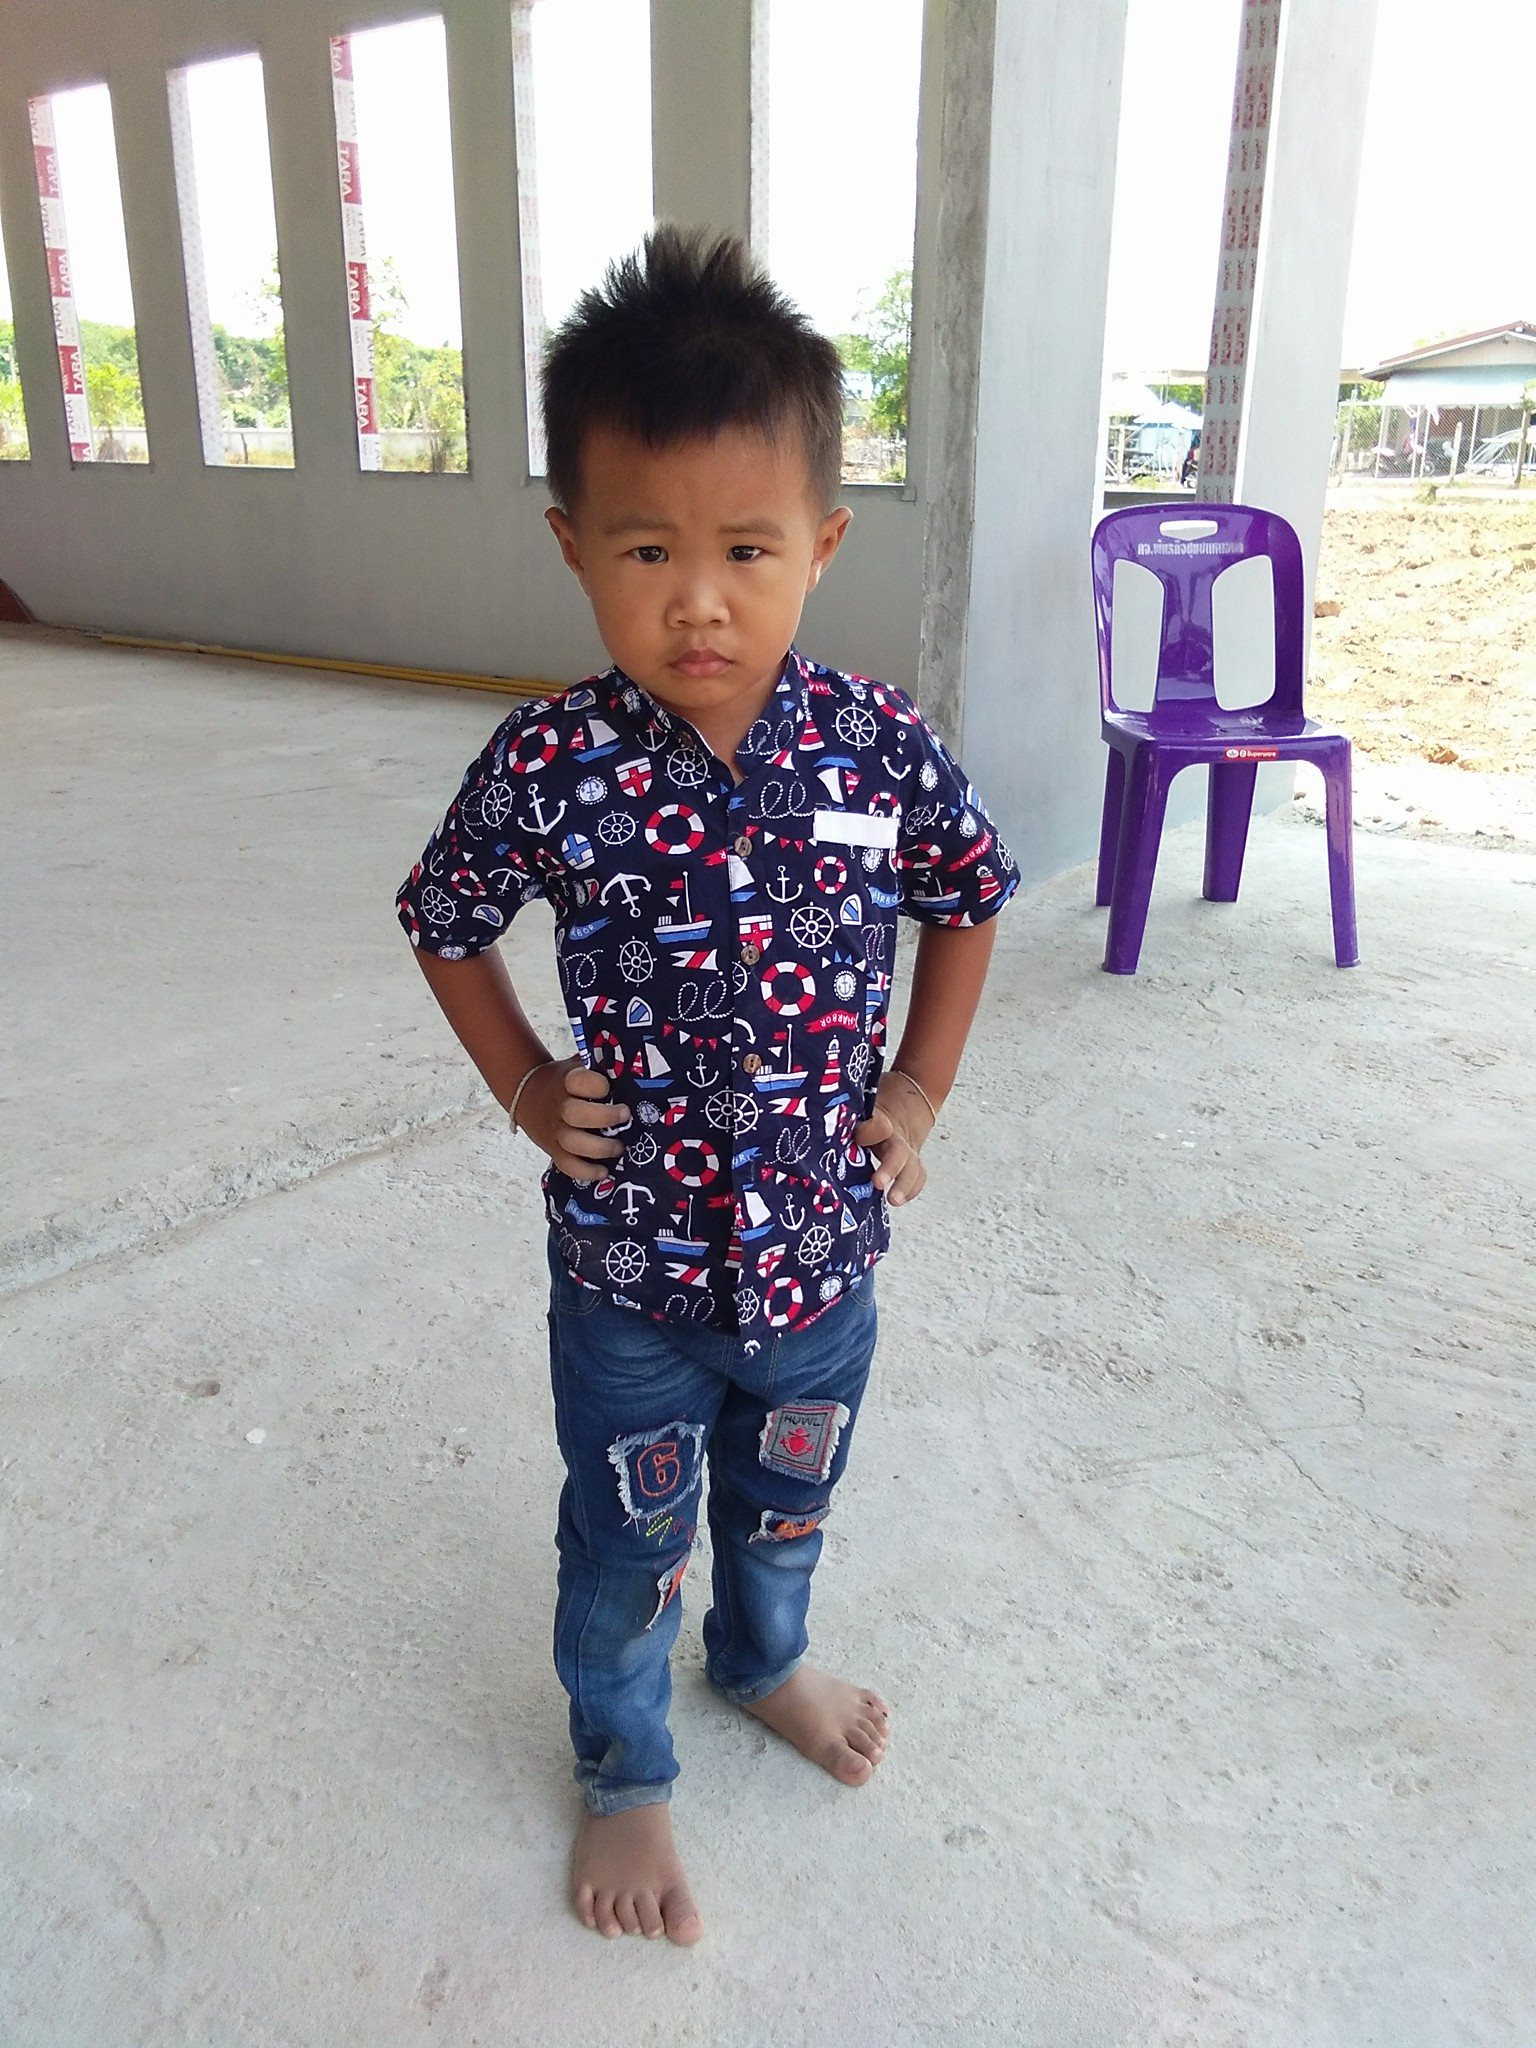 Sot Phar Sean Tanausab (5 years old, boy)